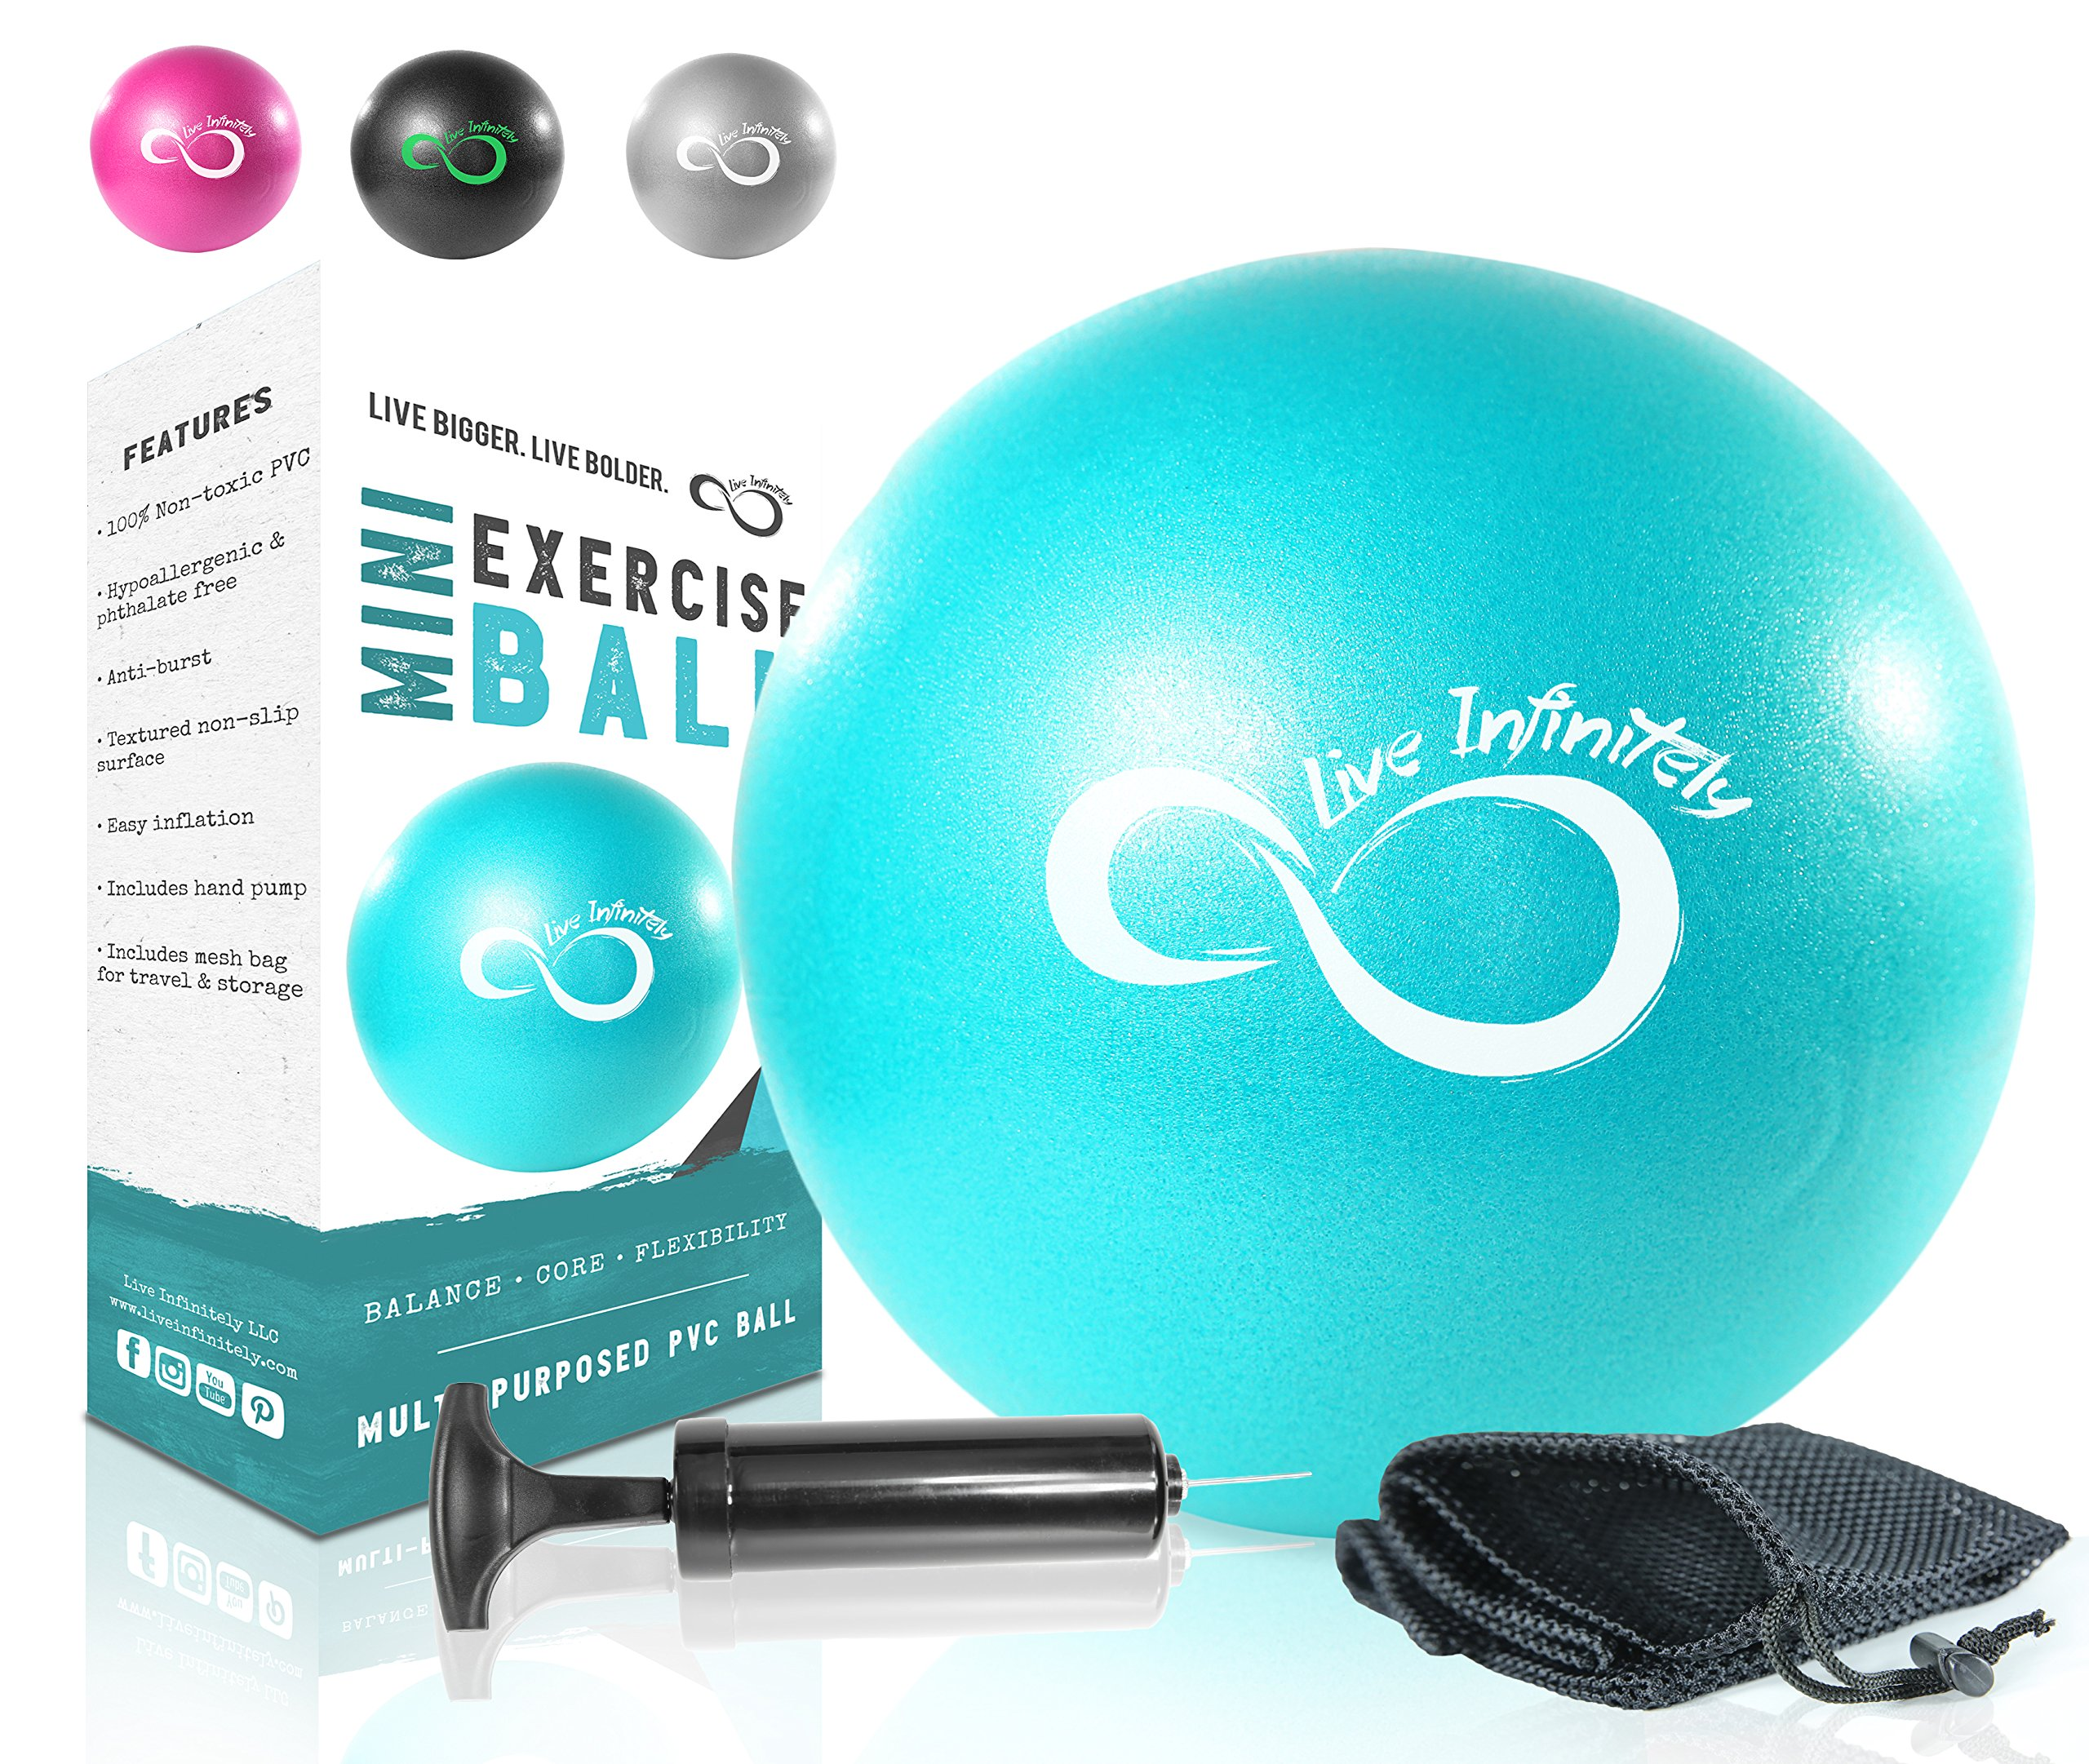 Live Infinitely Professional Grade 9 Inch Anti-Burst Mini Pilates Ball for Home Exercise, Balance Training, Yoga & Barre Workout – Includes Hand Pump, Needle Valve & Mesh Carrying Bag (Teal)